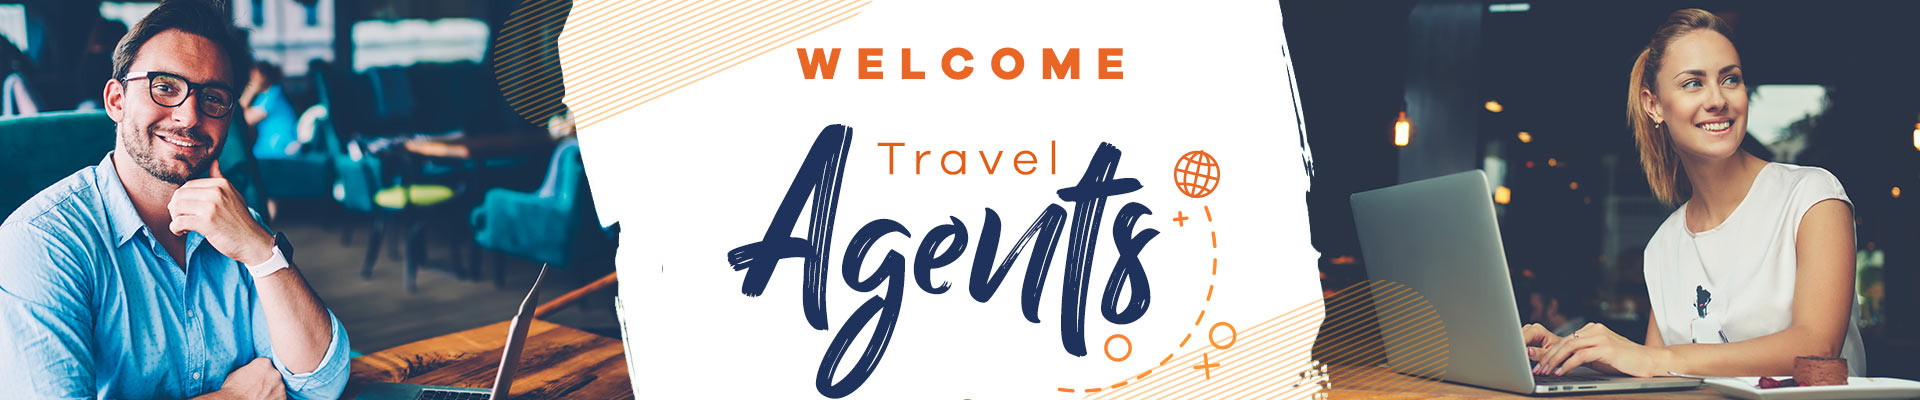 Travel Agents Royal Resorts